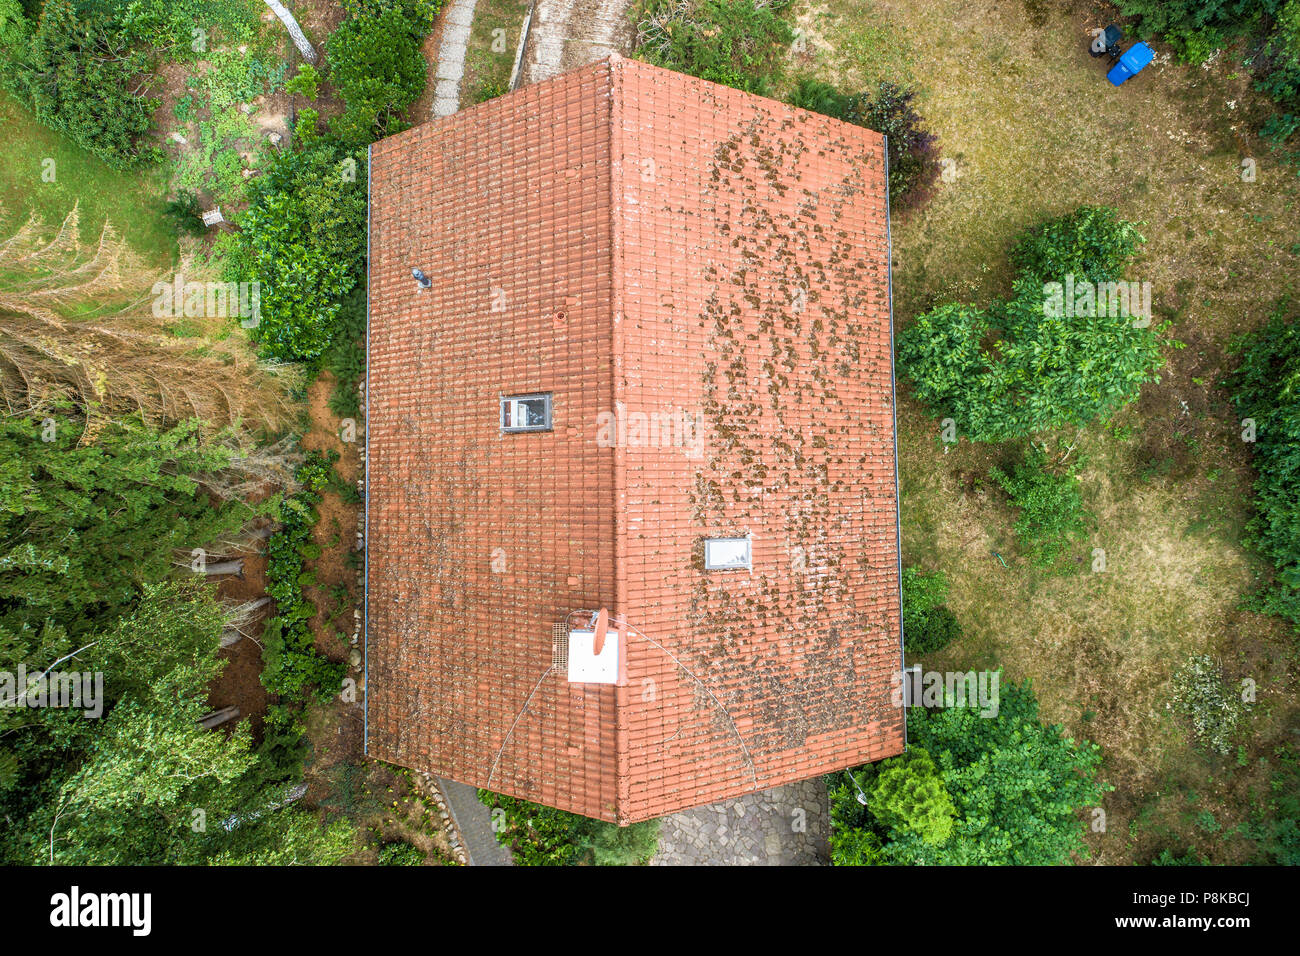 Flight over the red roof of a single family house with a chimney and a satellite antenna for inspection, control and preparation for a repair, made wi - Stock Image